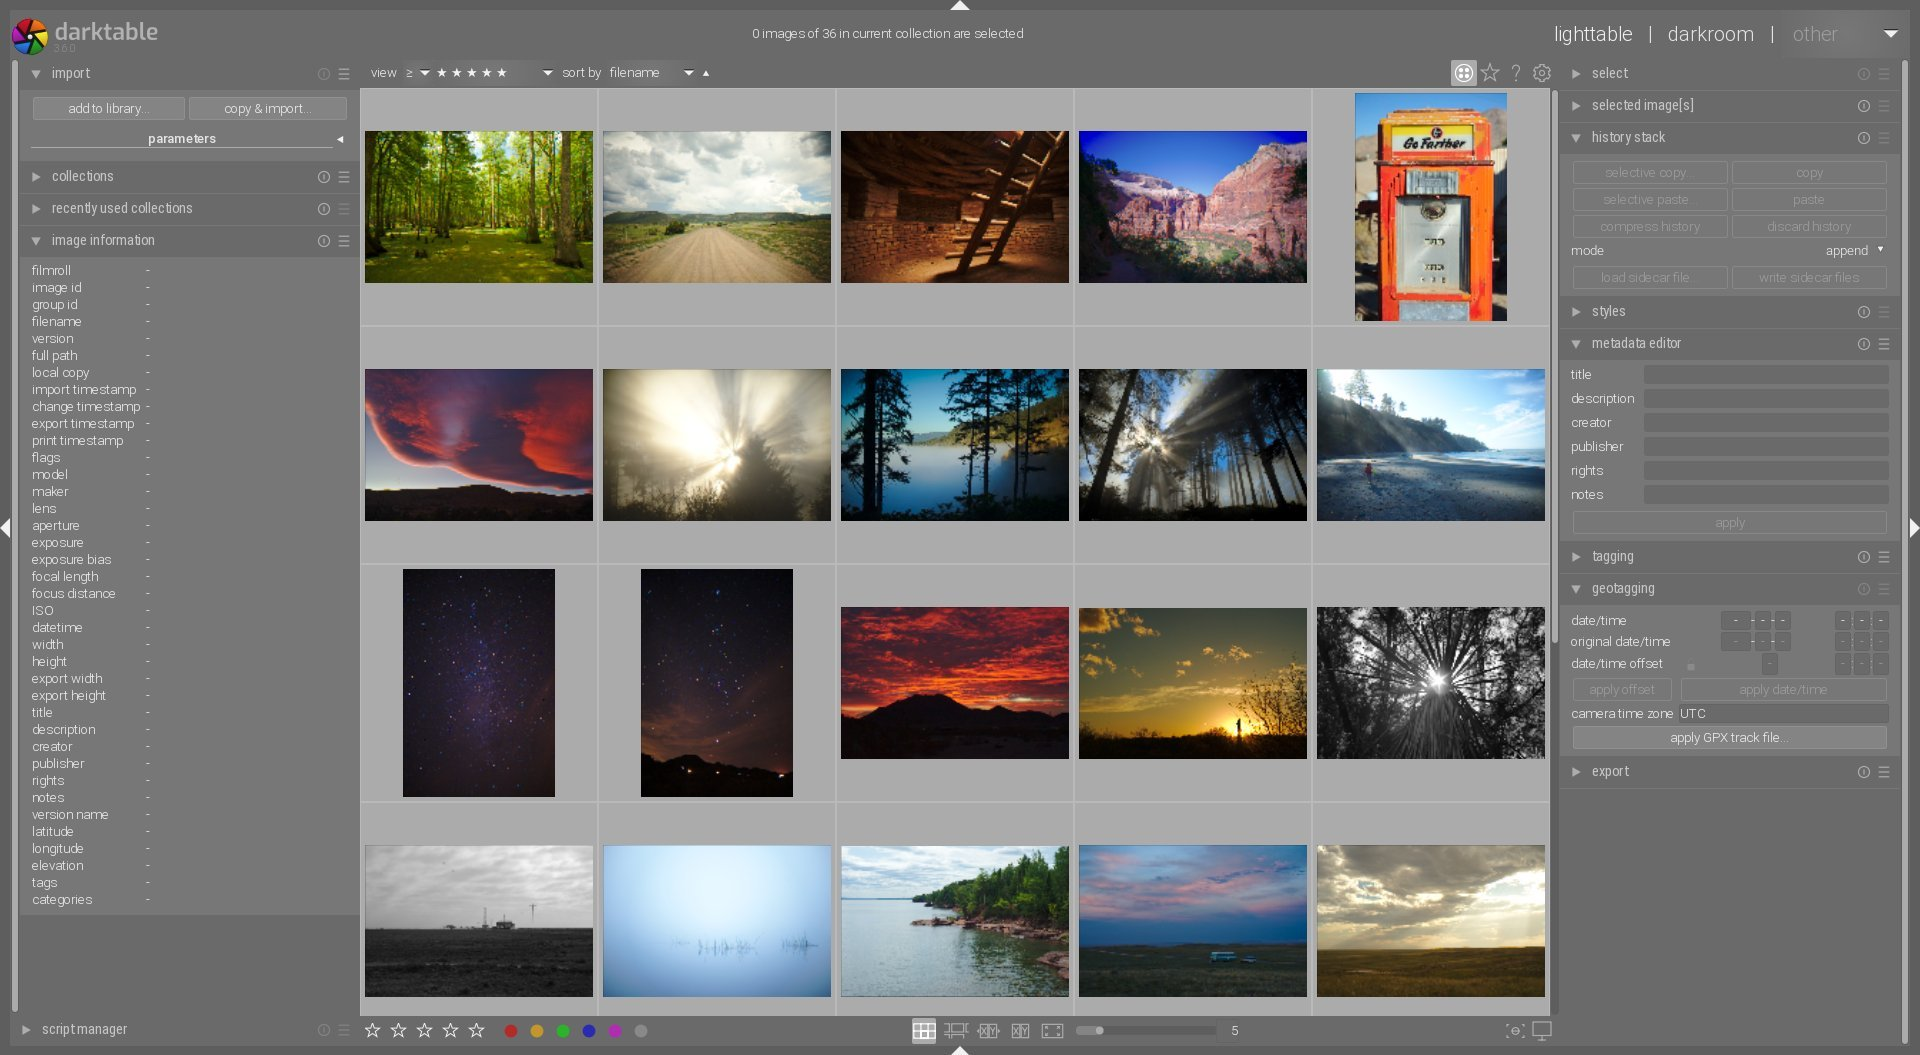 Review  Traditionally the Darktable project only releases one update a year, with a new version arriving on Christmas day. But the developers behind D